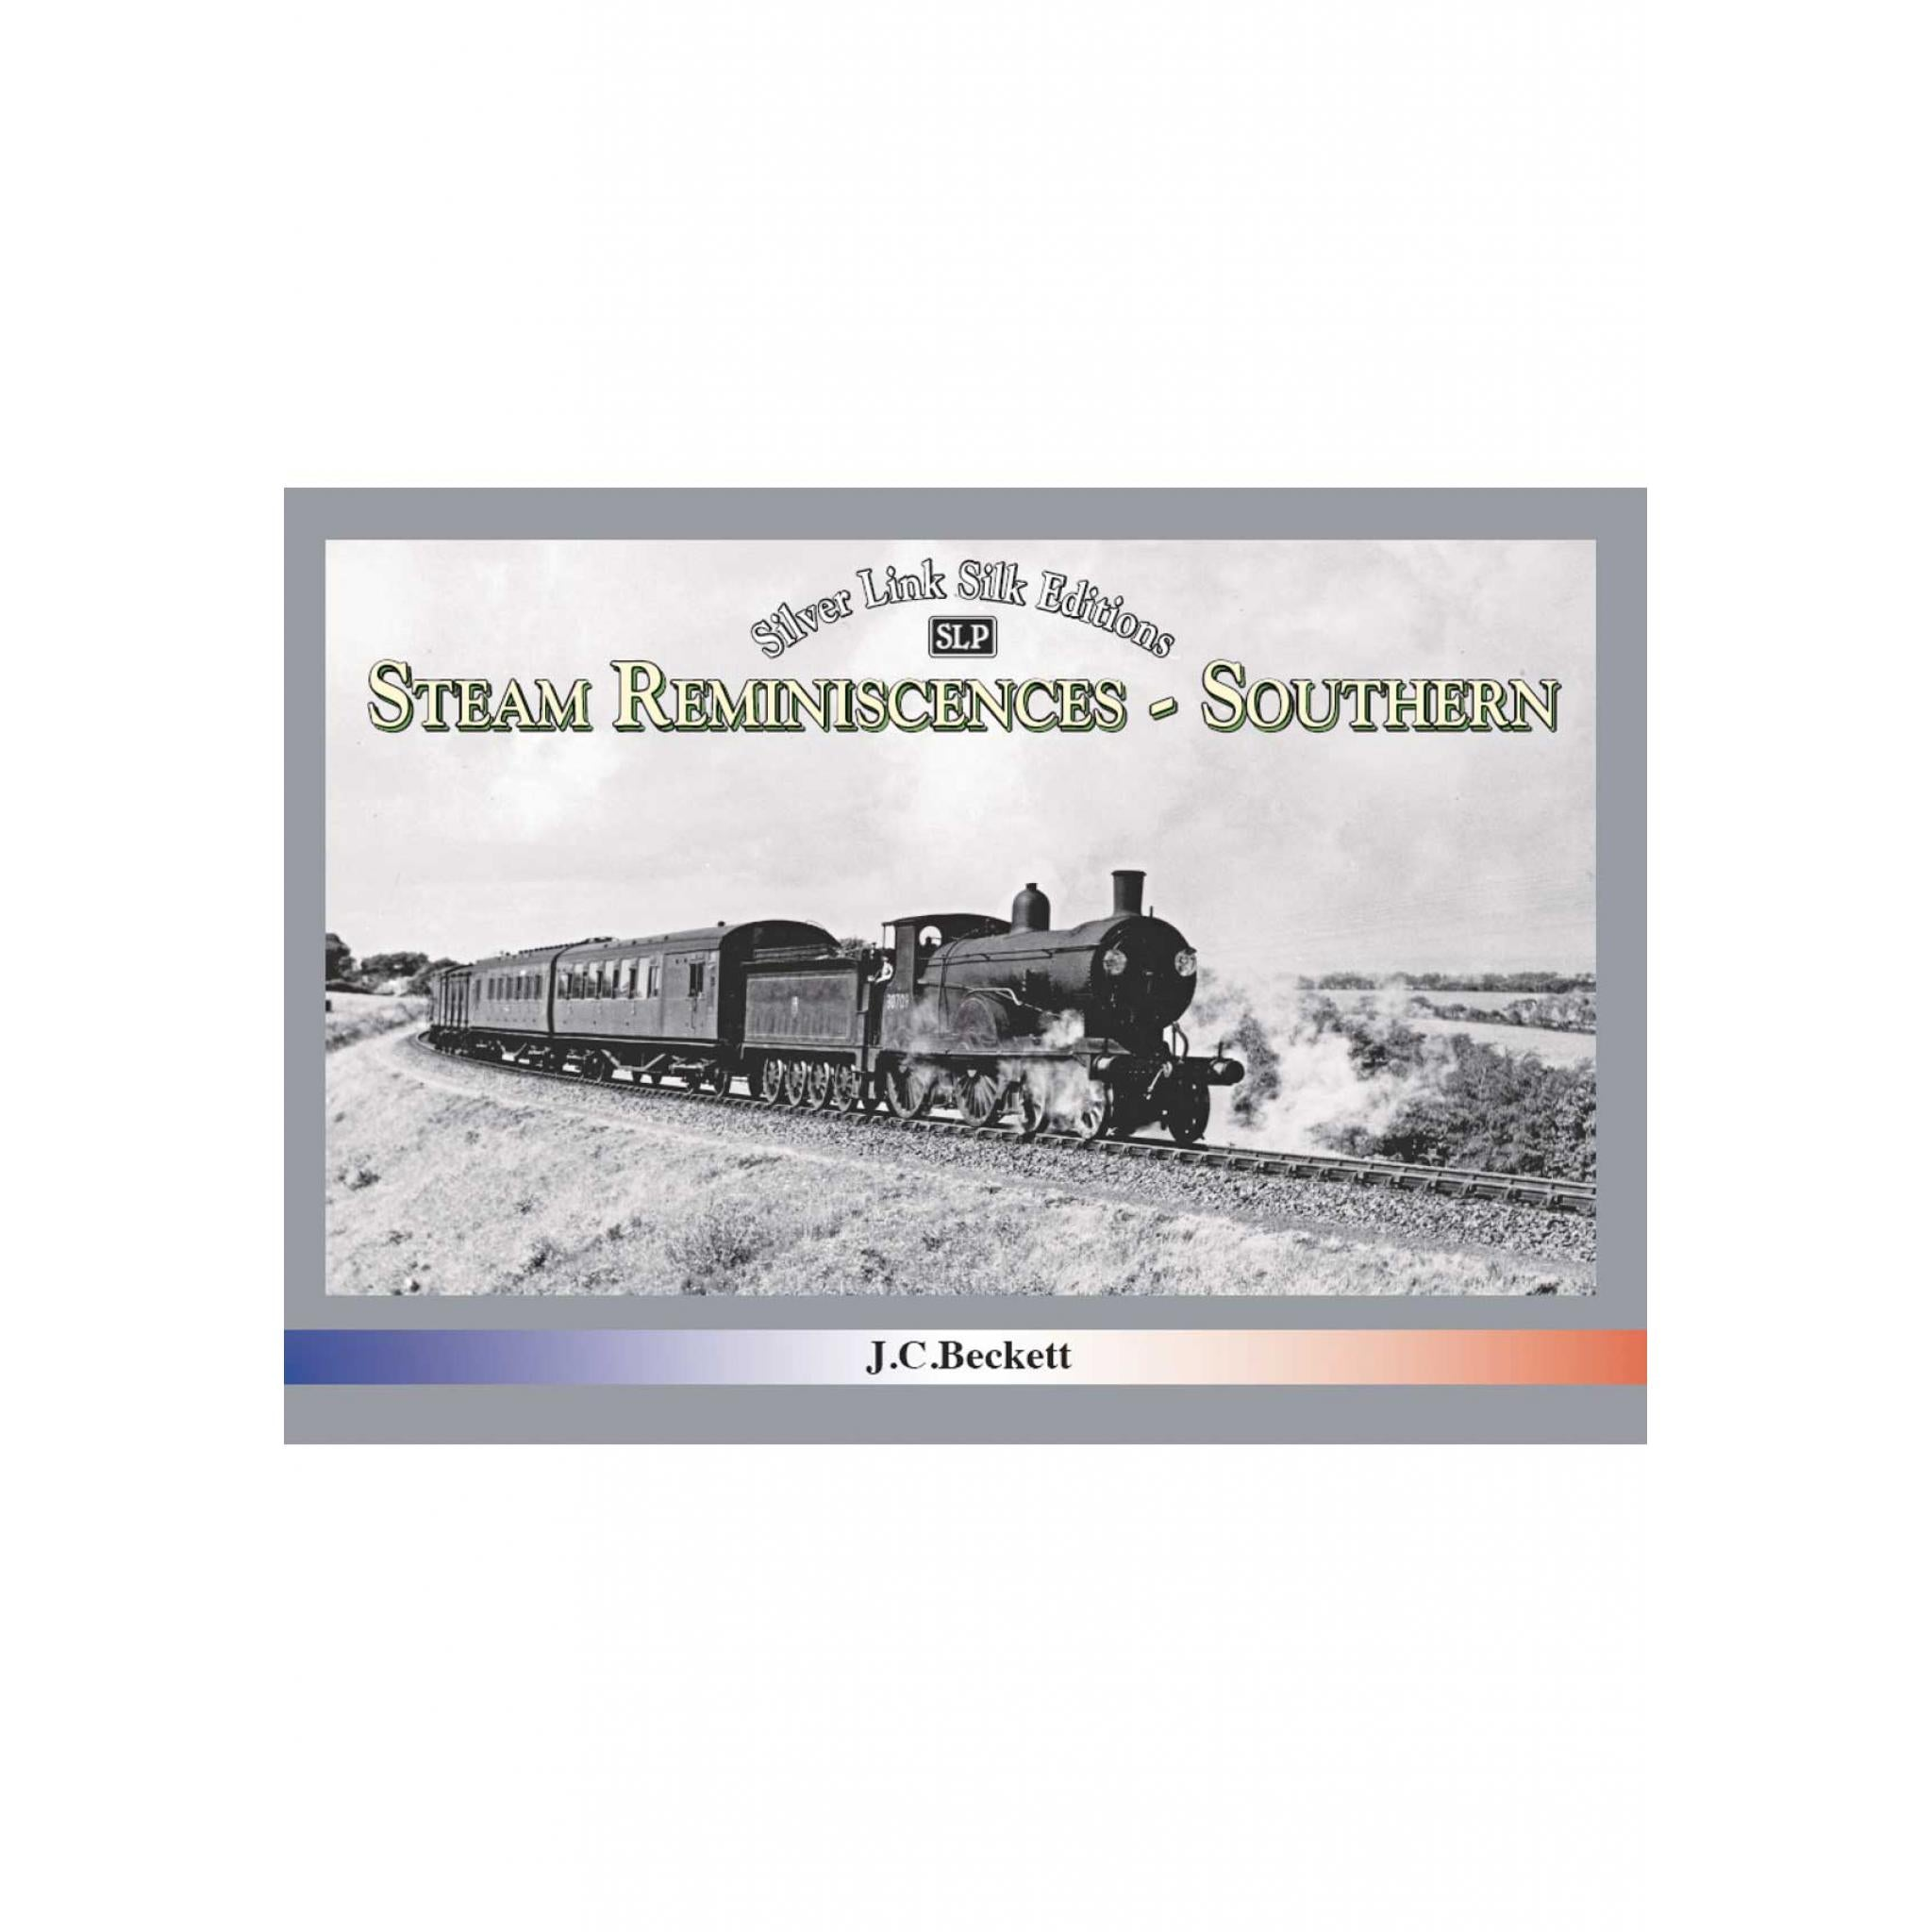 STEAM REMINISCENCES - SOUTHERN